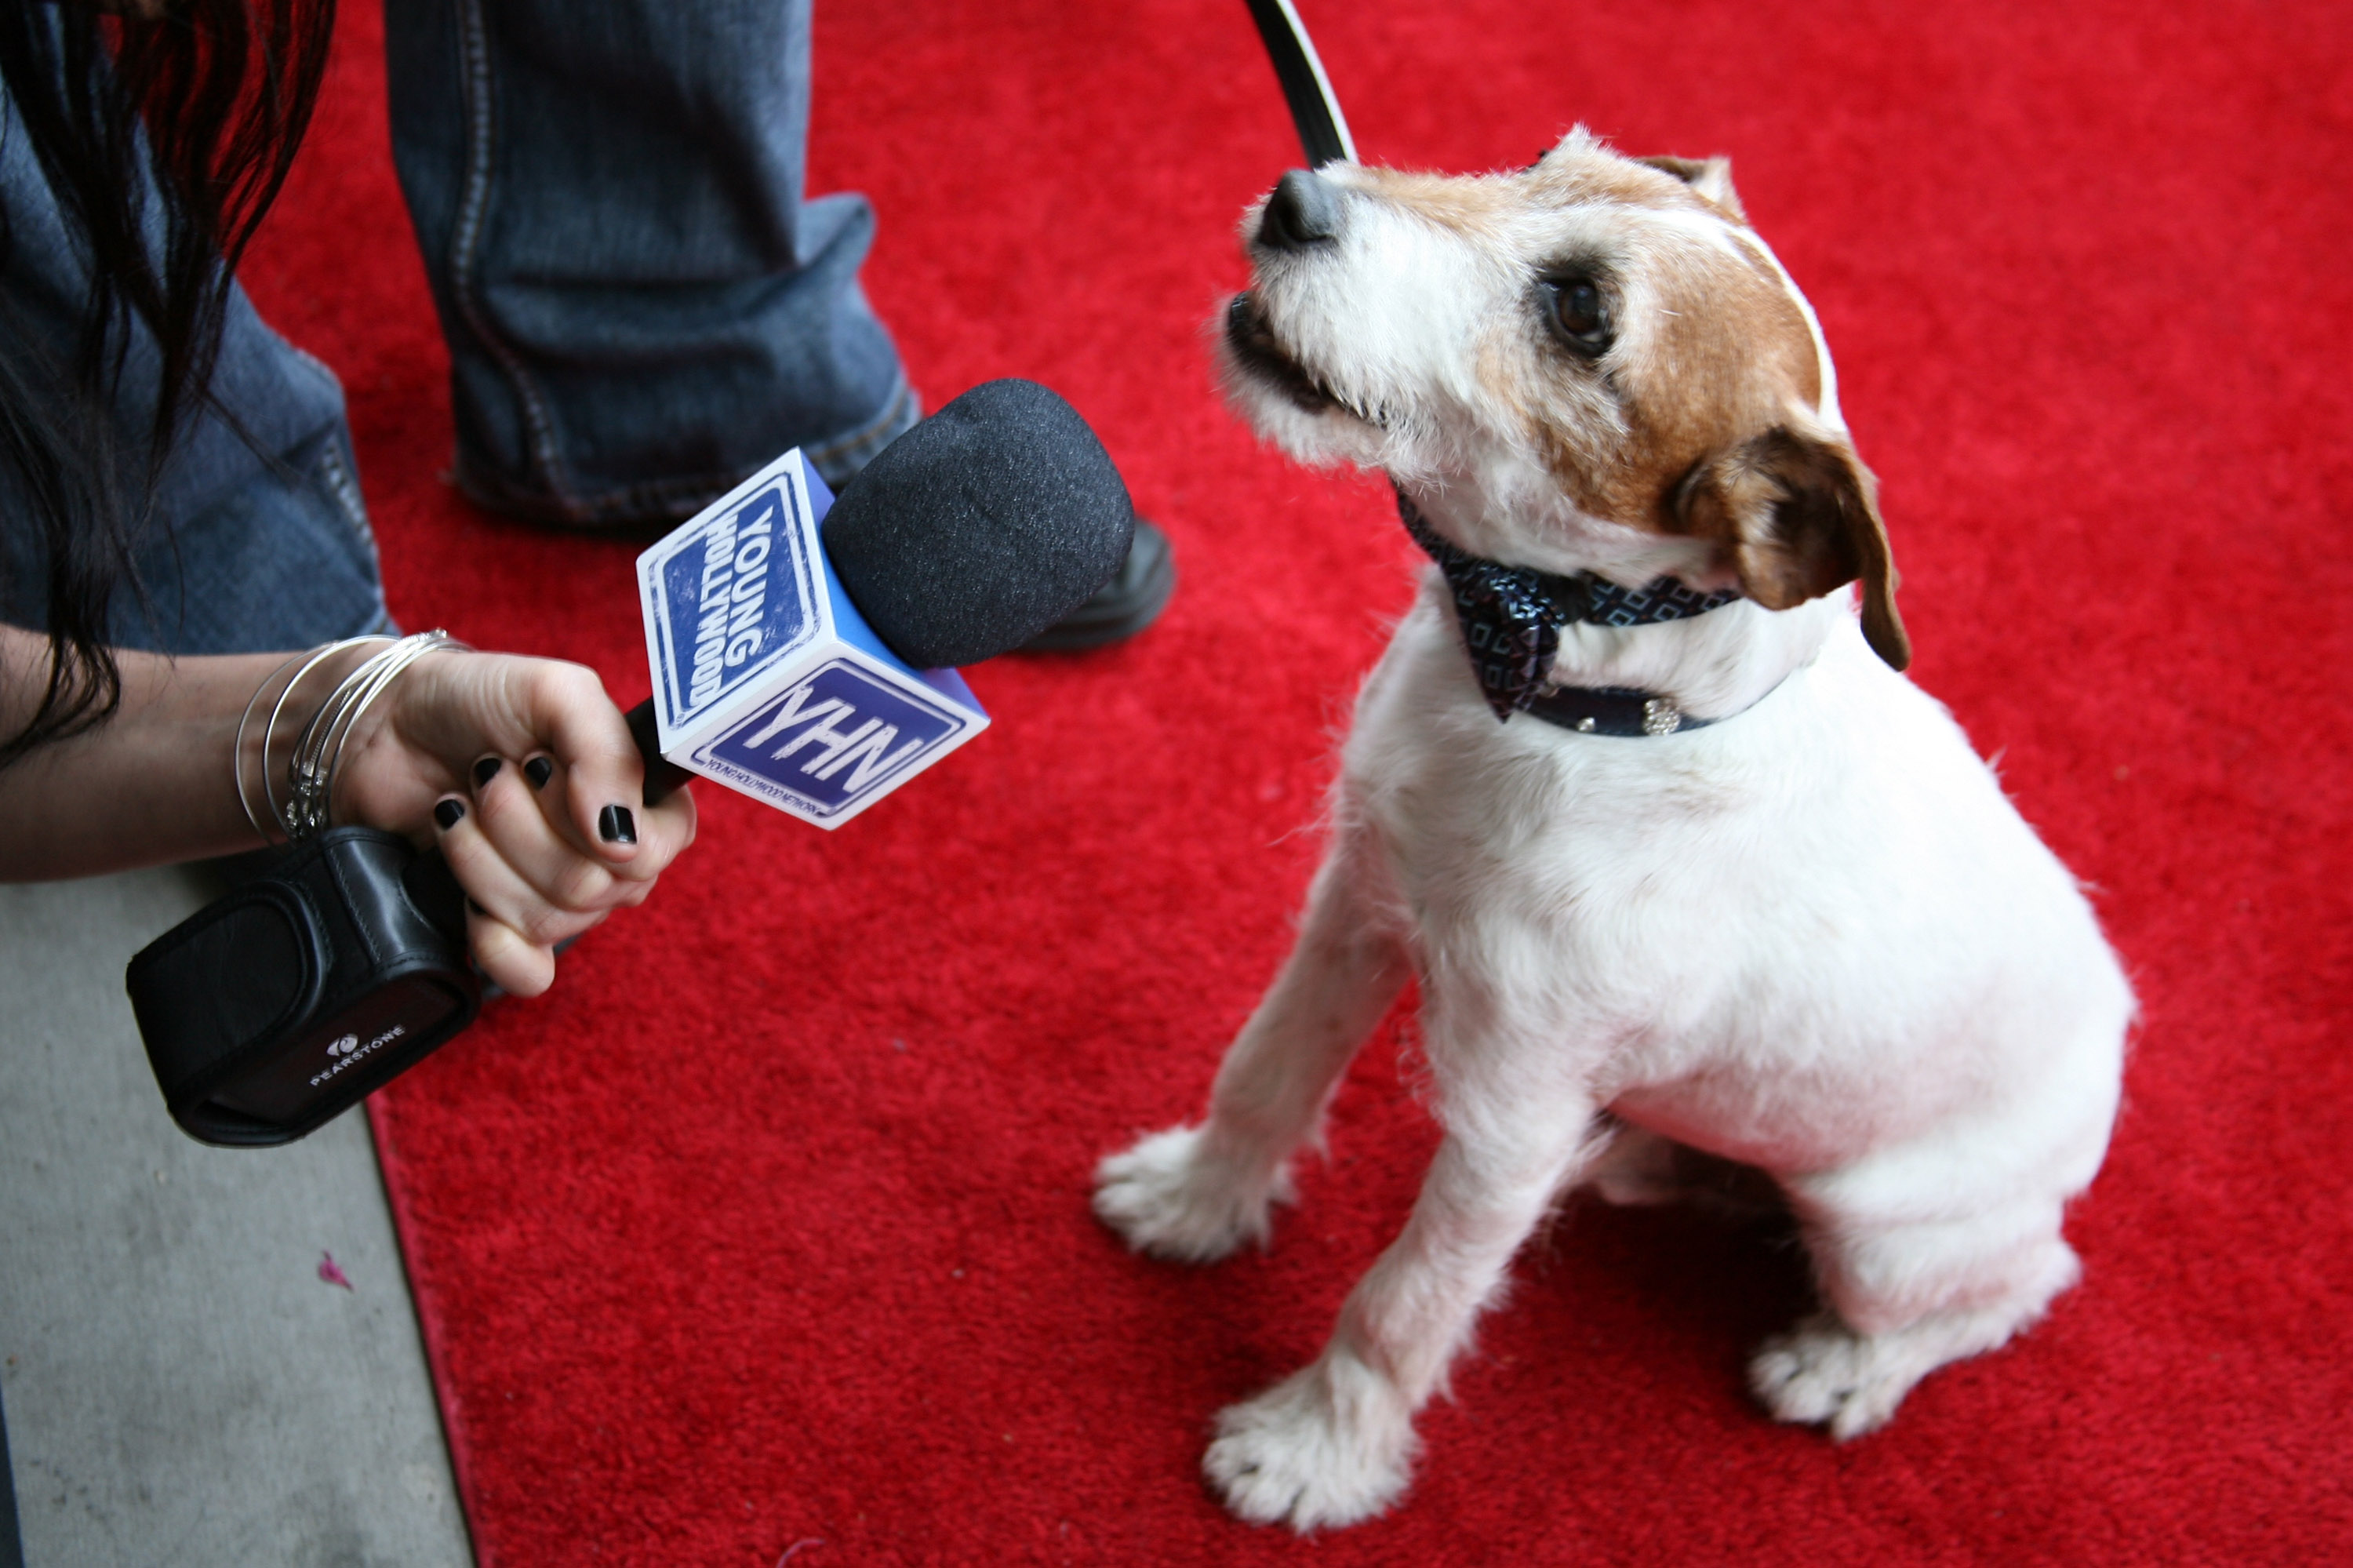 Uggie provides some air time during a red-carpet interview at the Unleashed event. Source: Getty